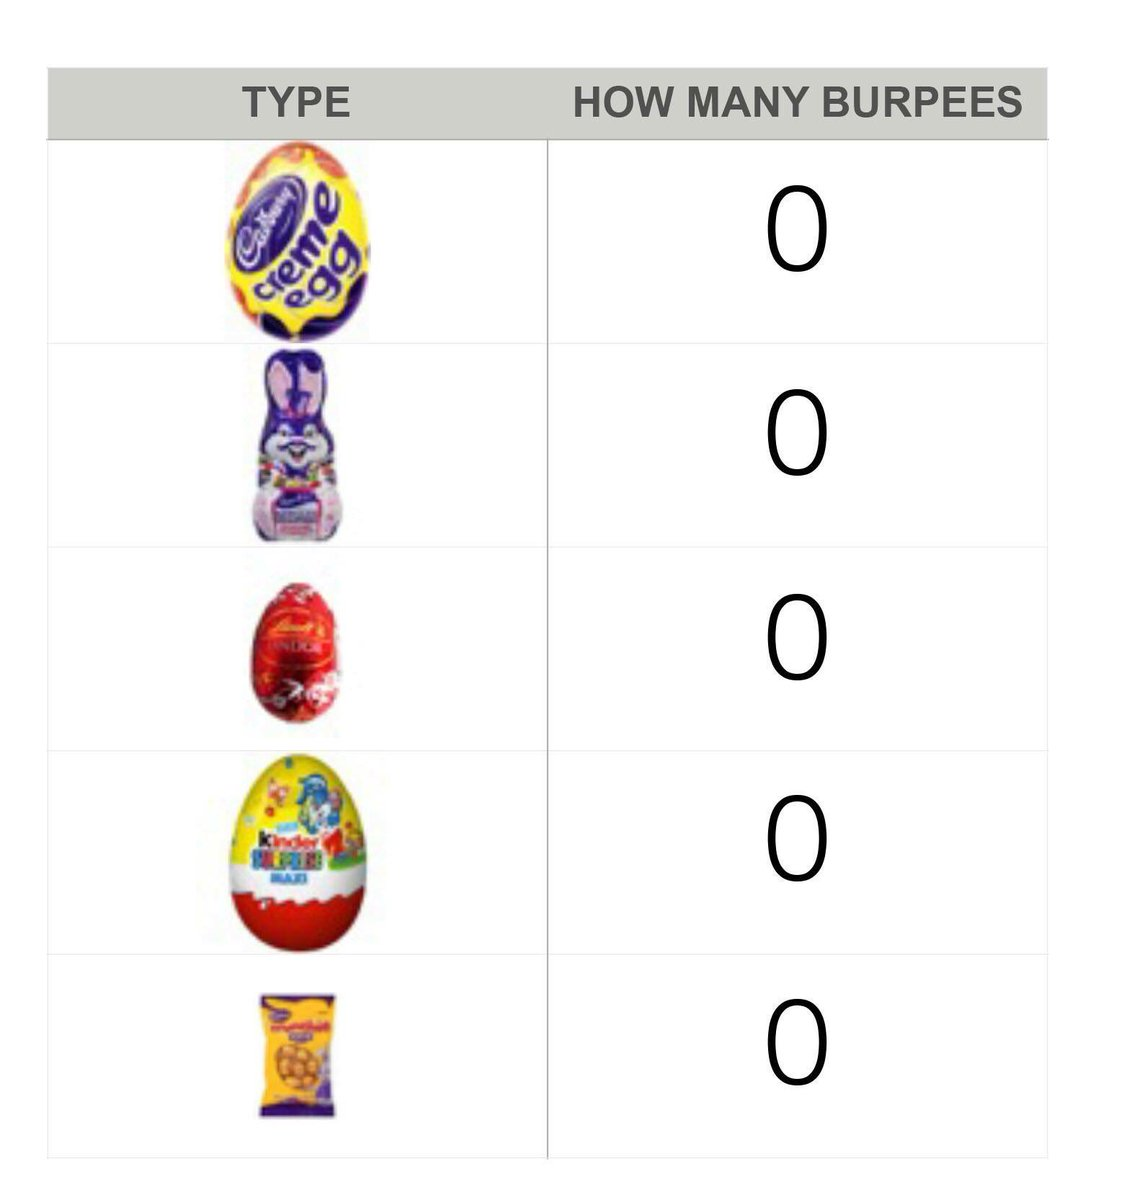 This is how many Burpees you need to do to get rid of all that chocolate badness... #fuckguilteatmore https://t.co/qLaLJB5goI